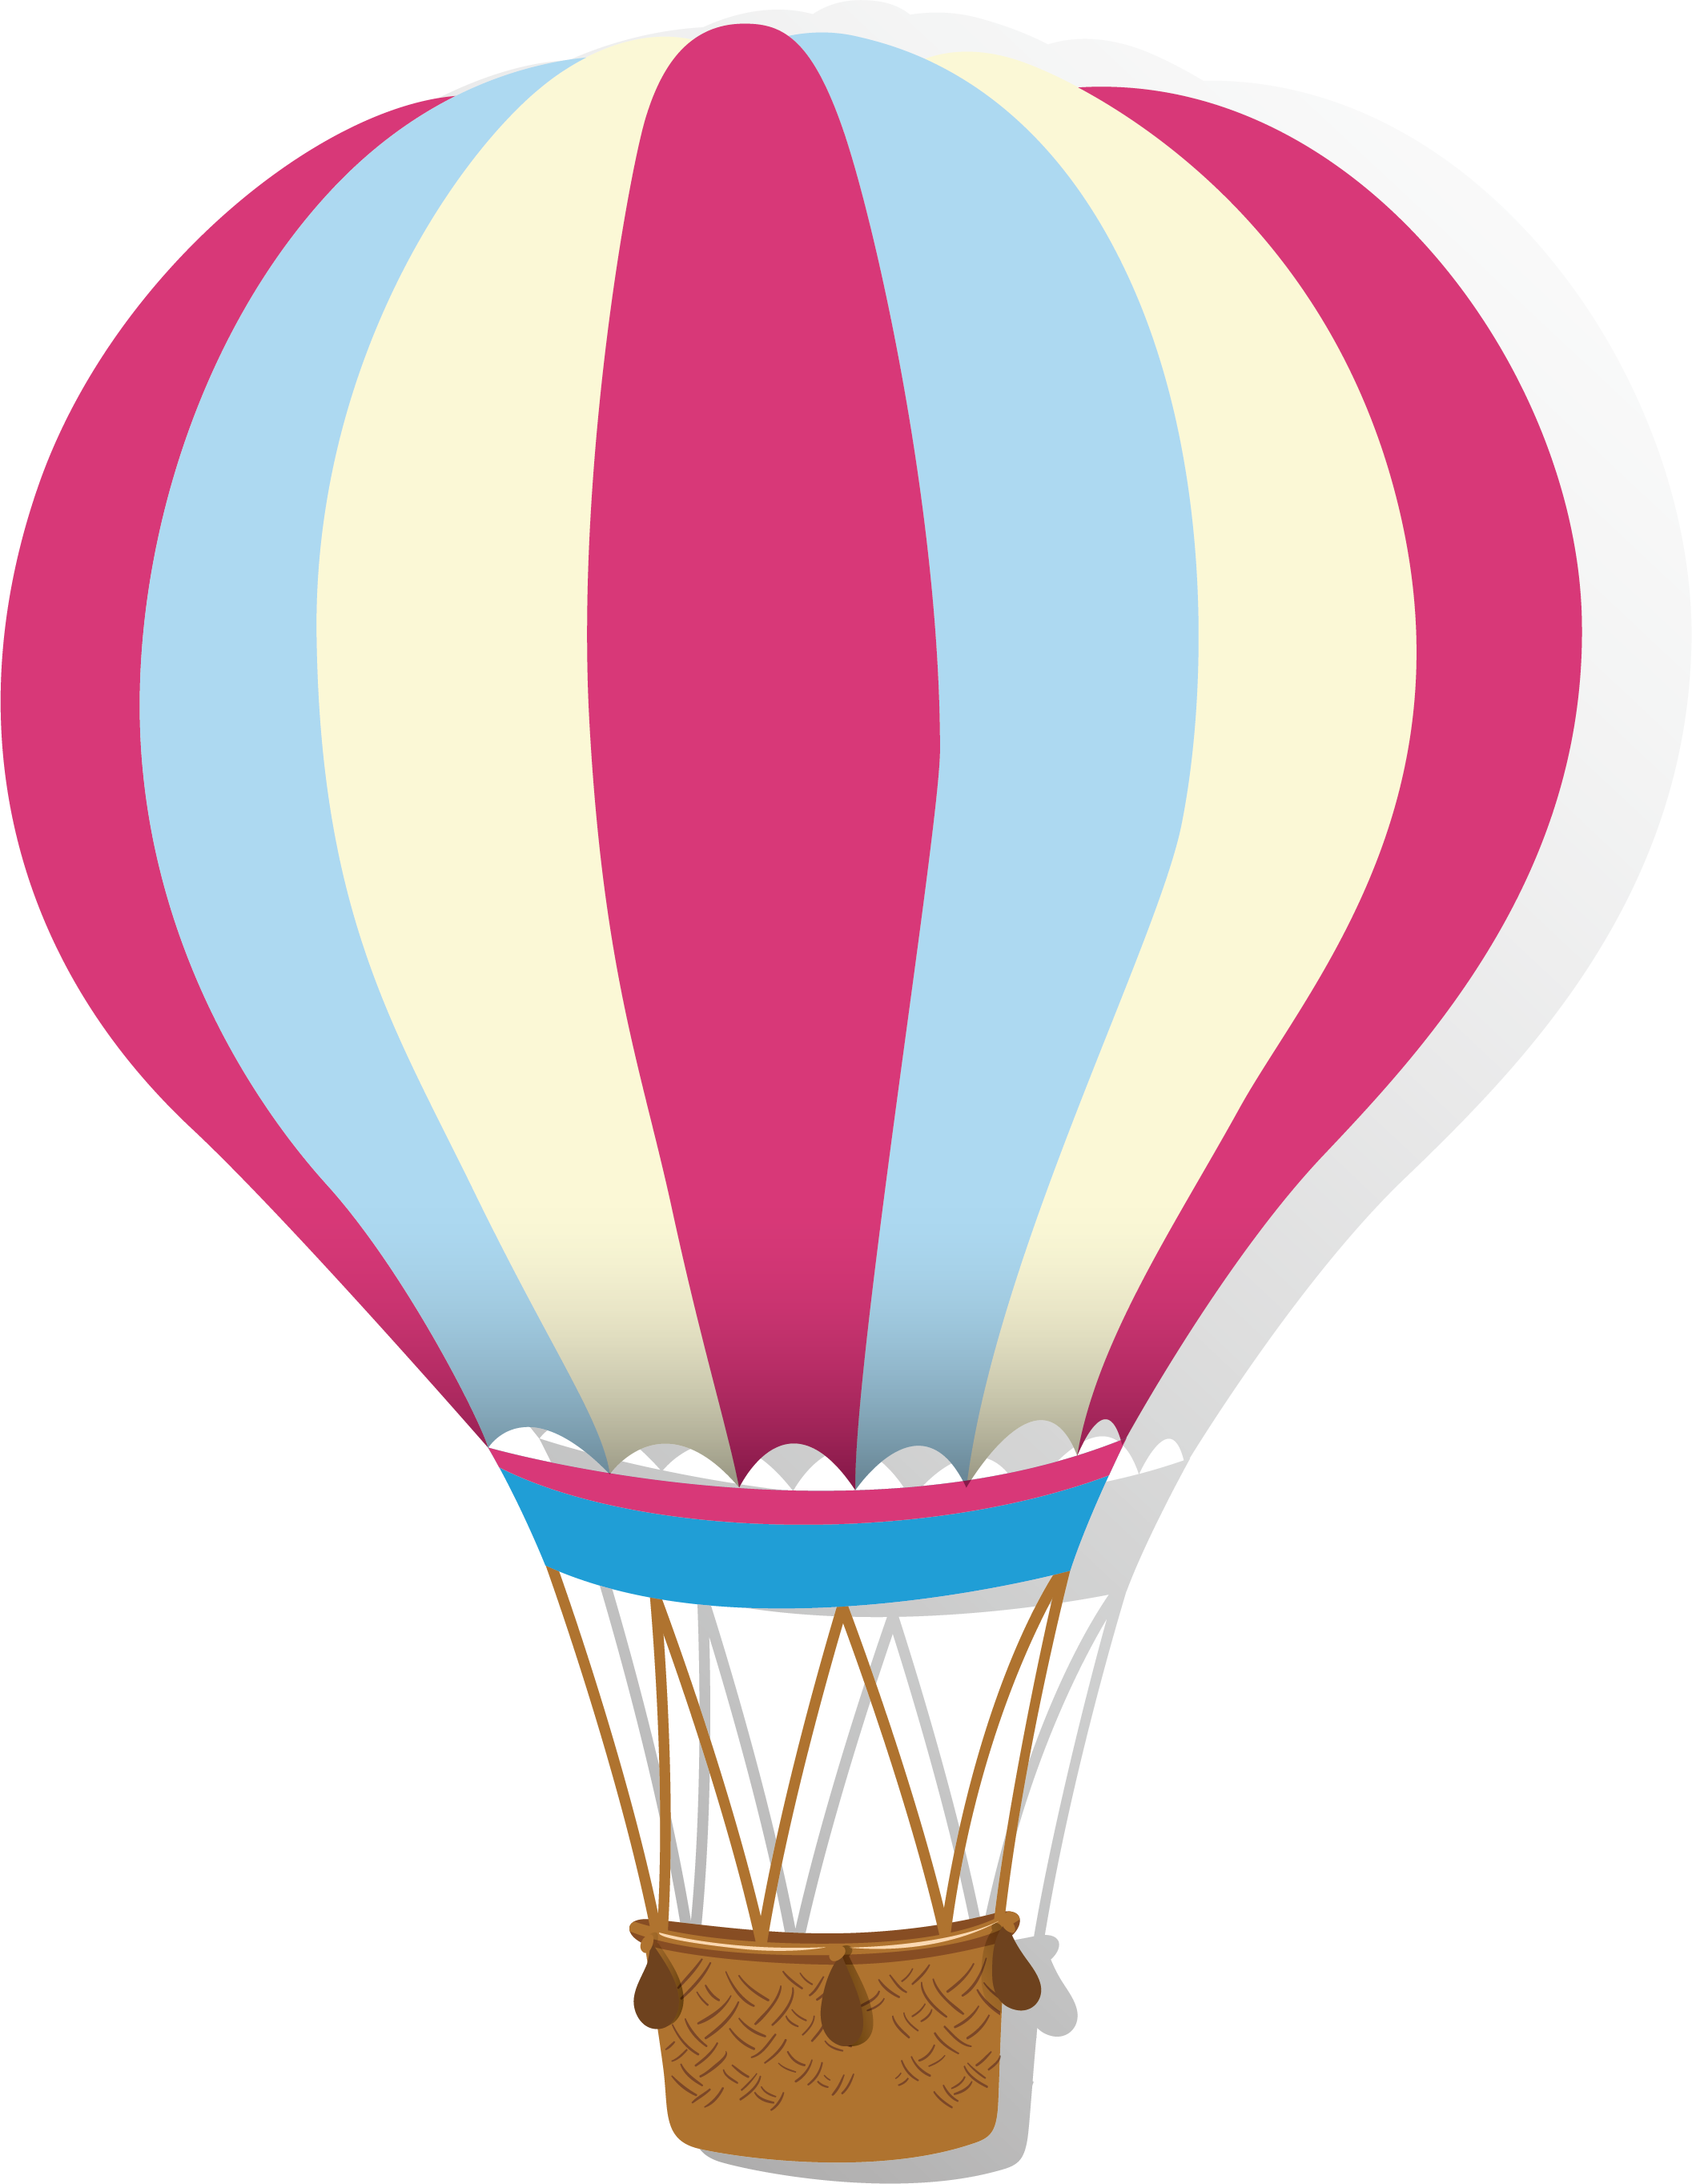 Pink hot air balloon png. Airplane stripe transprent free